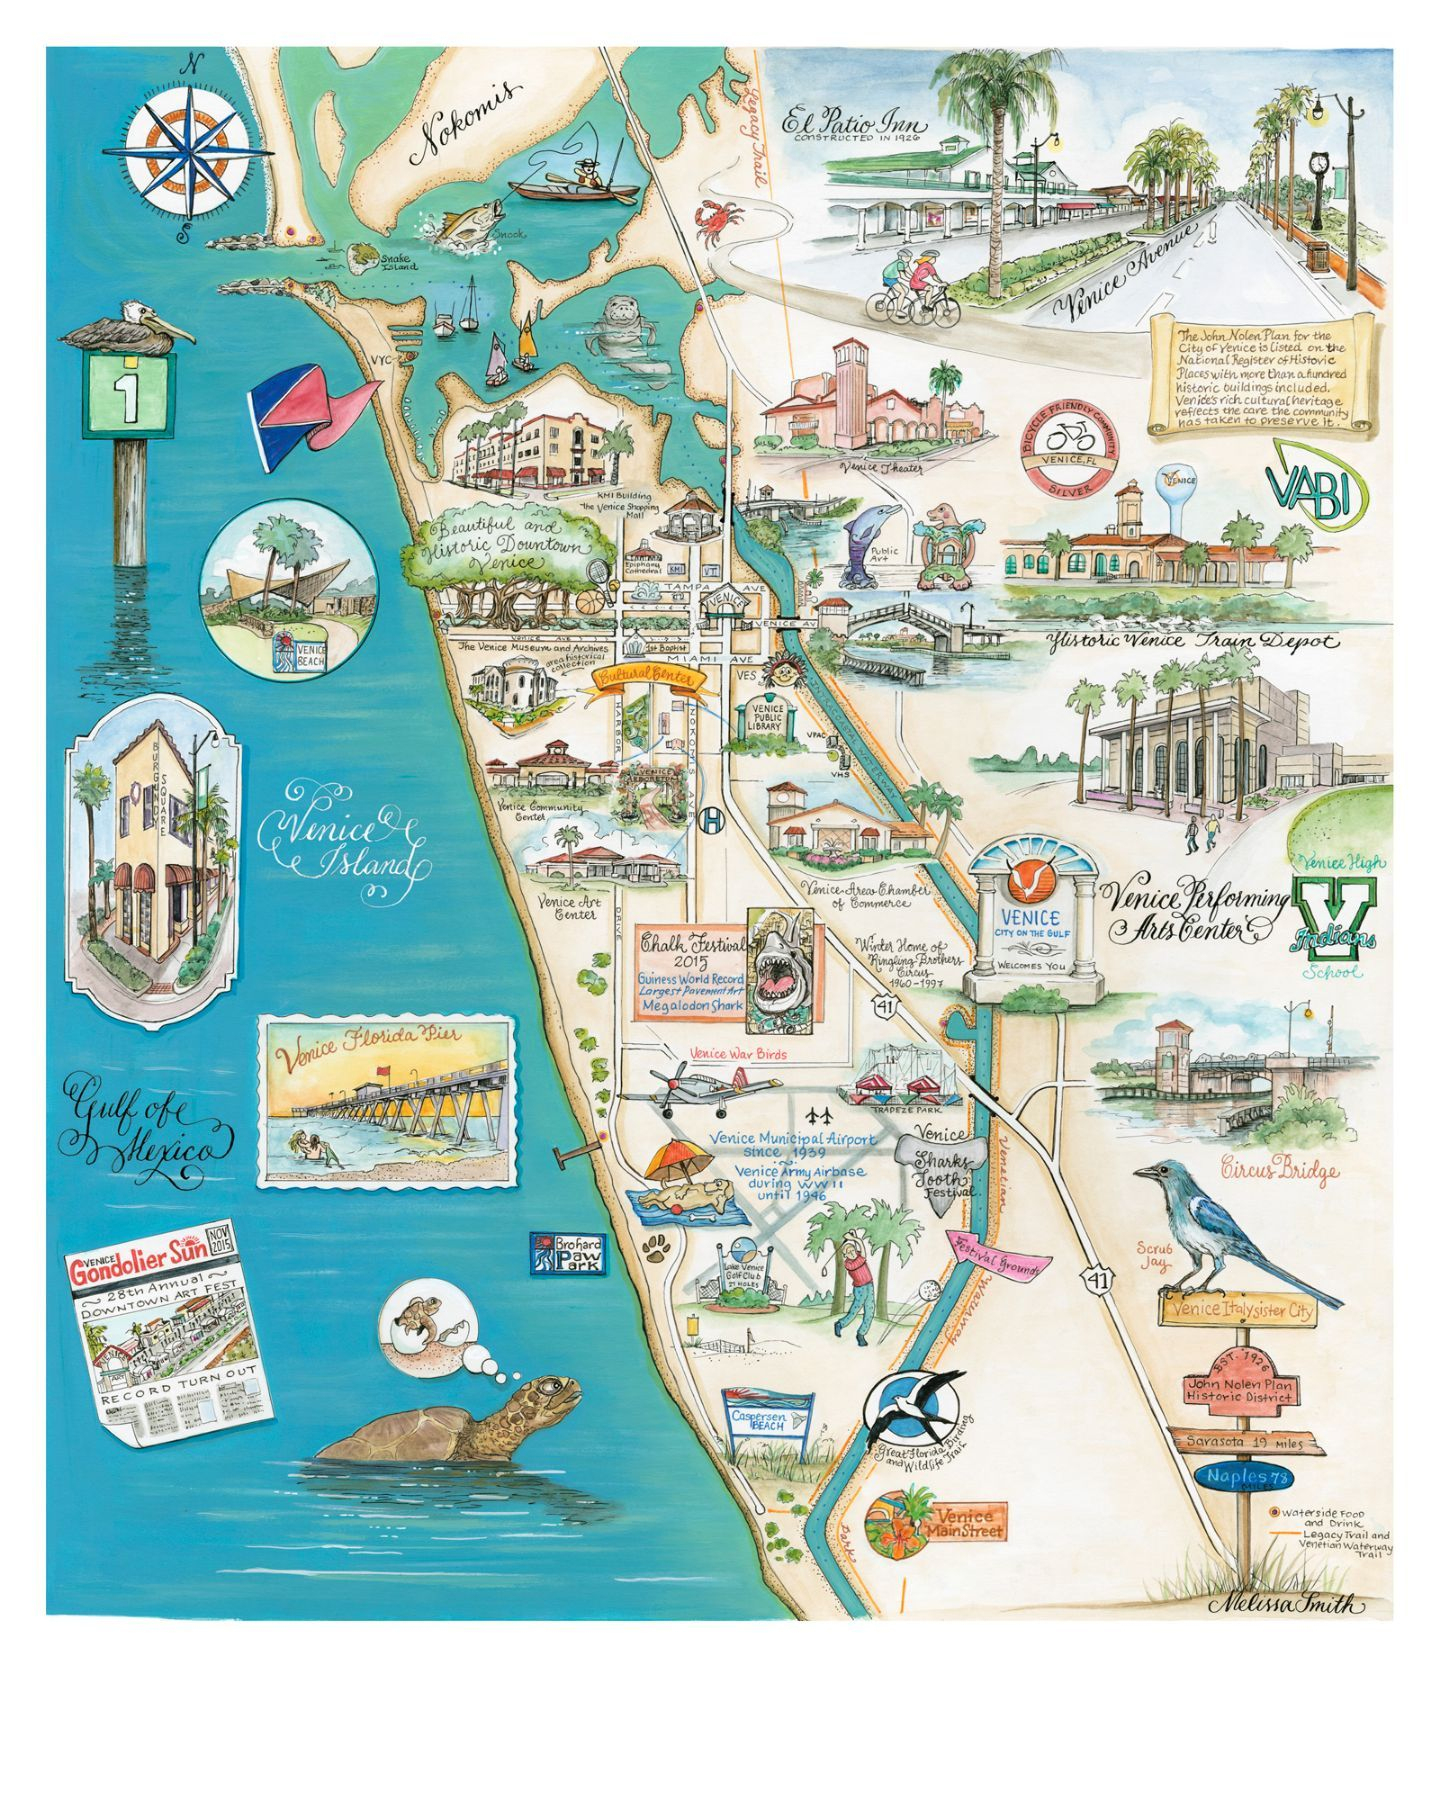 Venice, Florida Map - This Map Is One Of The Prettiest Maps I Have - Sarasota Florida Map Of Florida